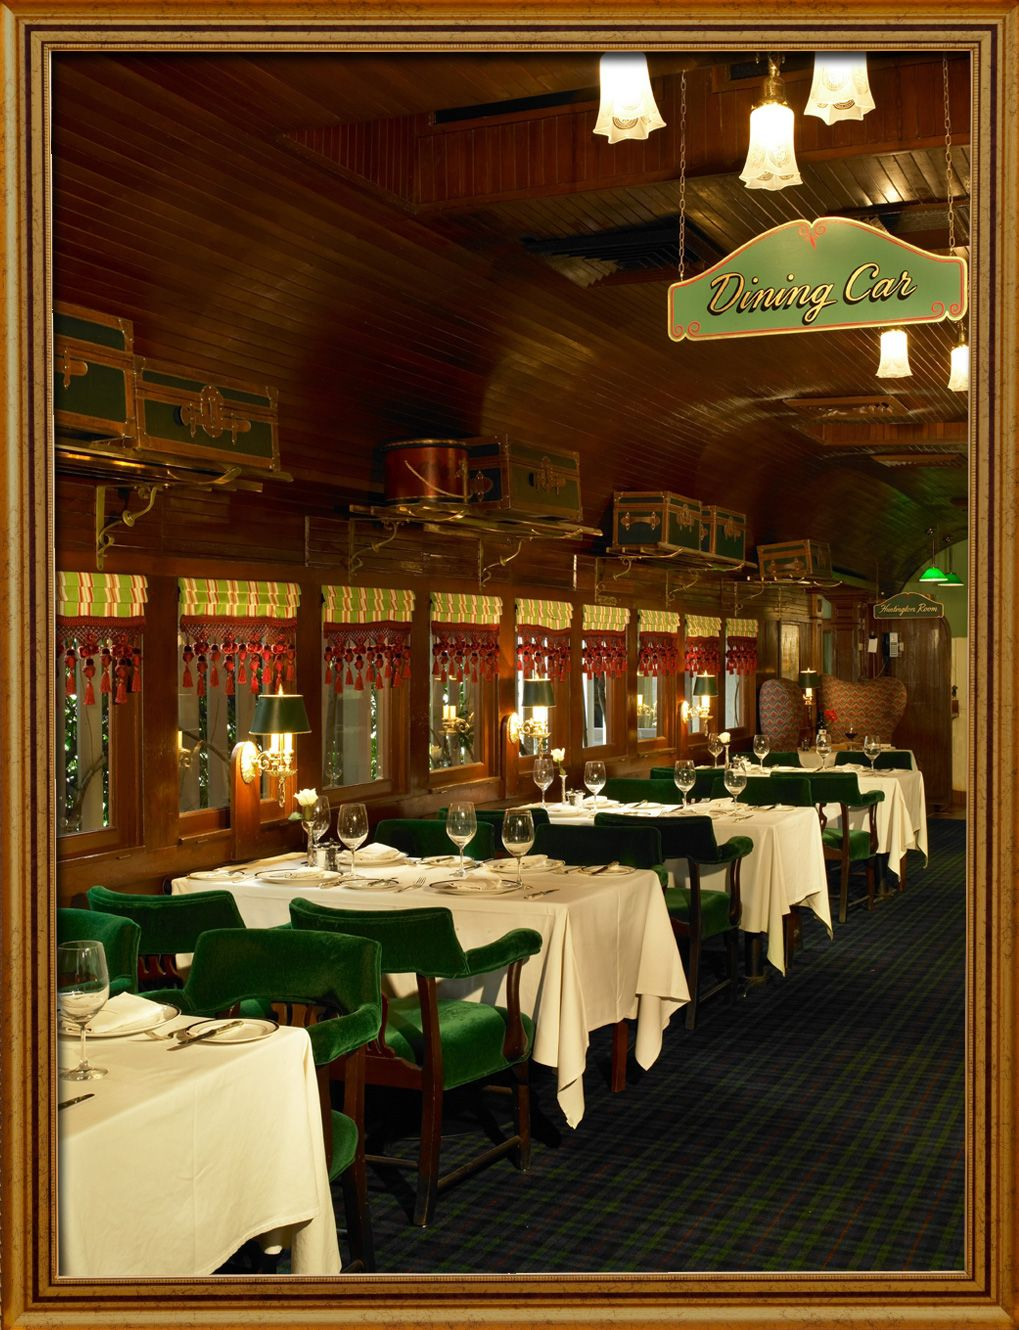 Join Us At The Iconic L A Steakhouse Pacific Dining Car In Los Angeles And Santa Monica For Breakfast Lunch Dinner Tea Late Night Supper